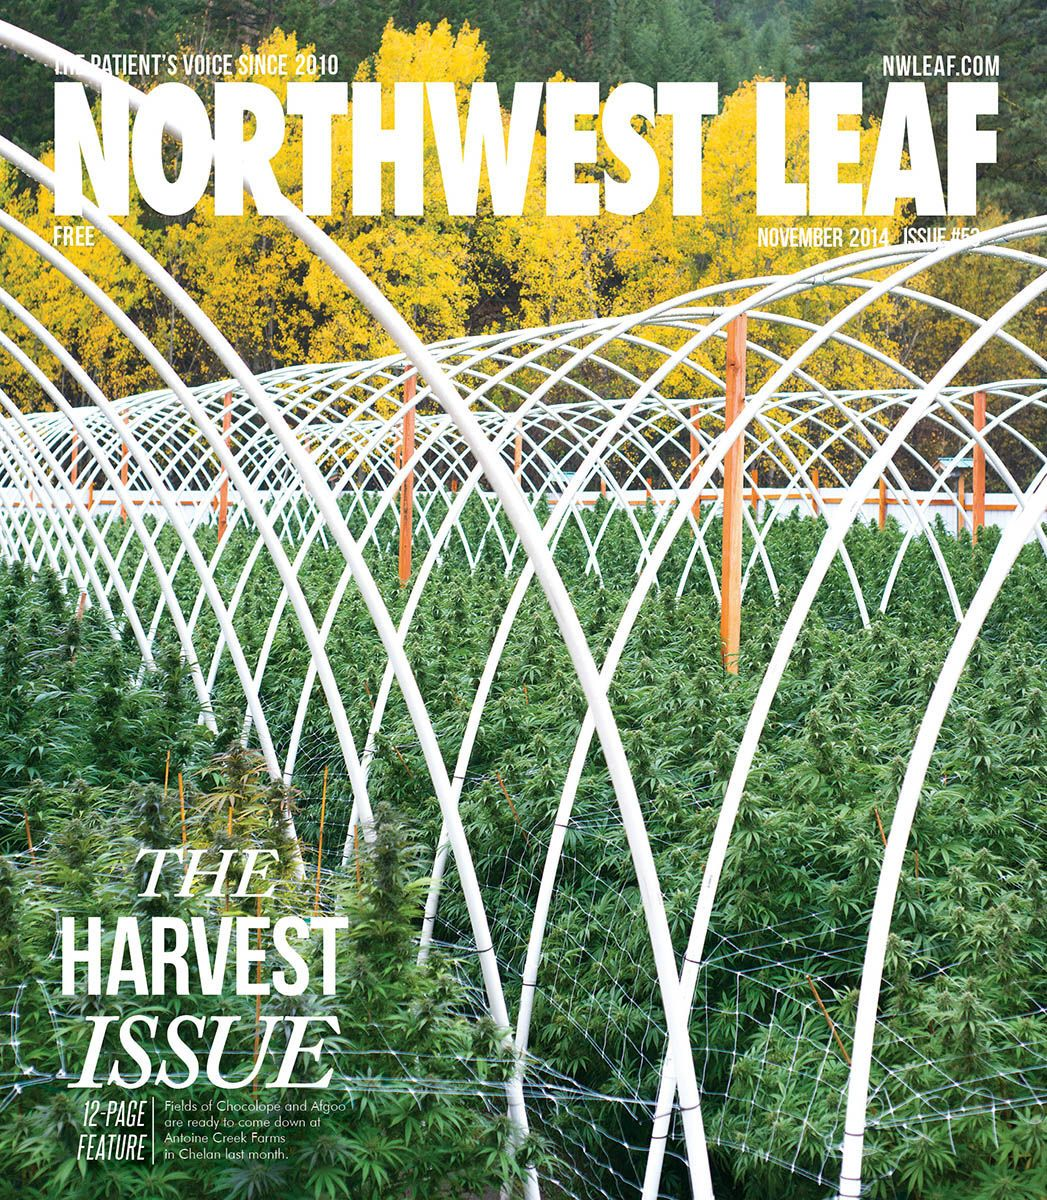 1nov2014_nwleaf_cover_seattleeditorialphotographer